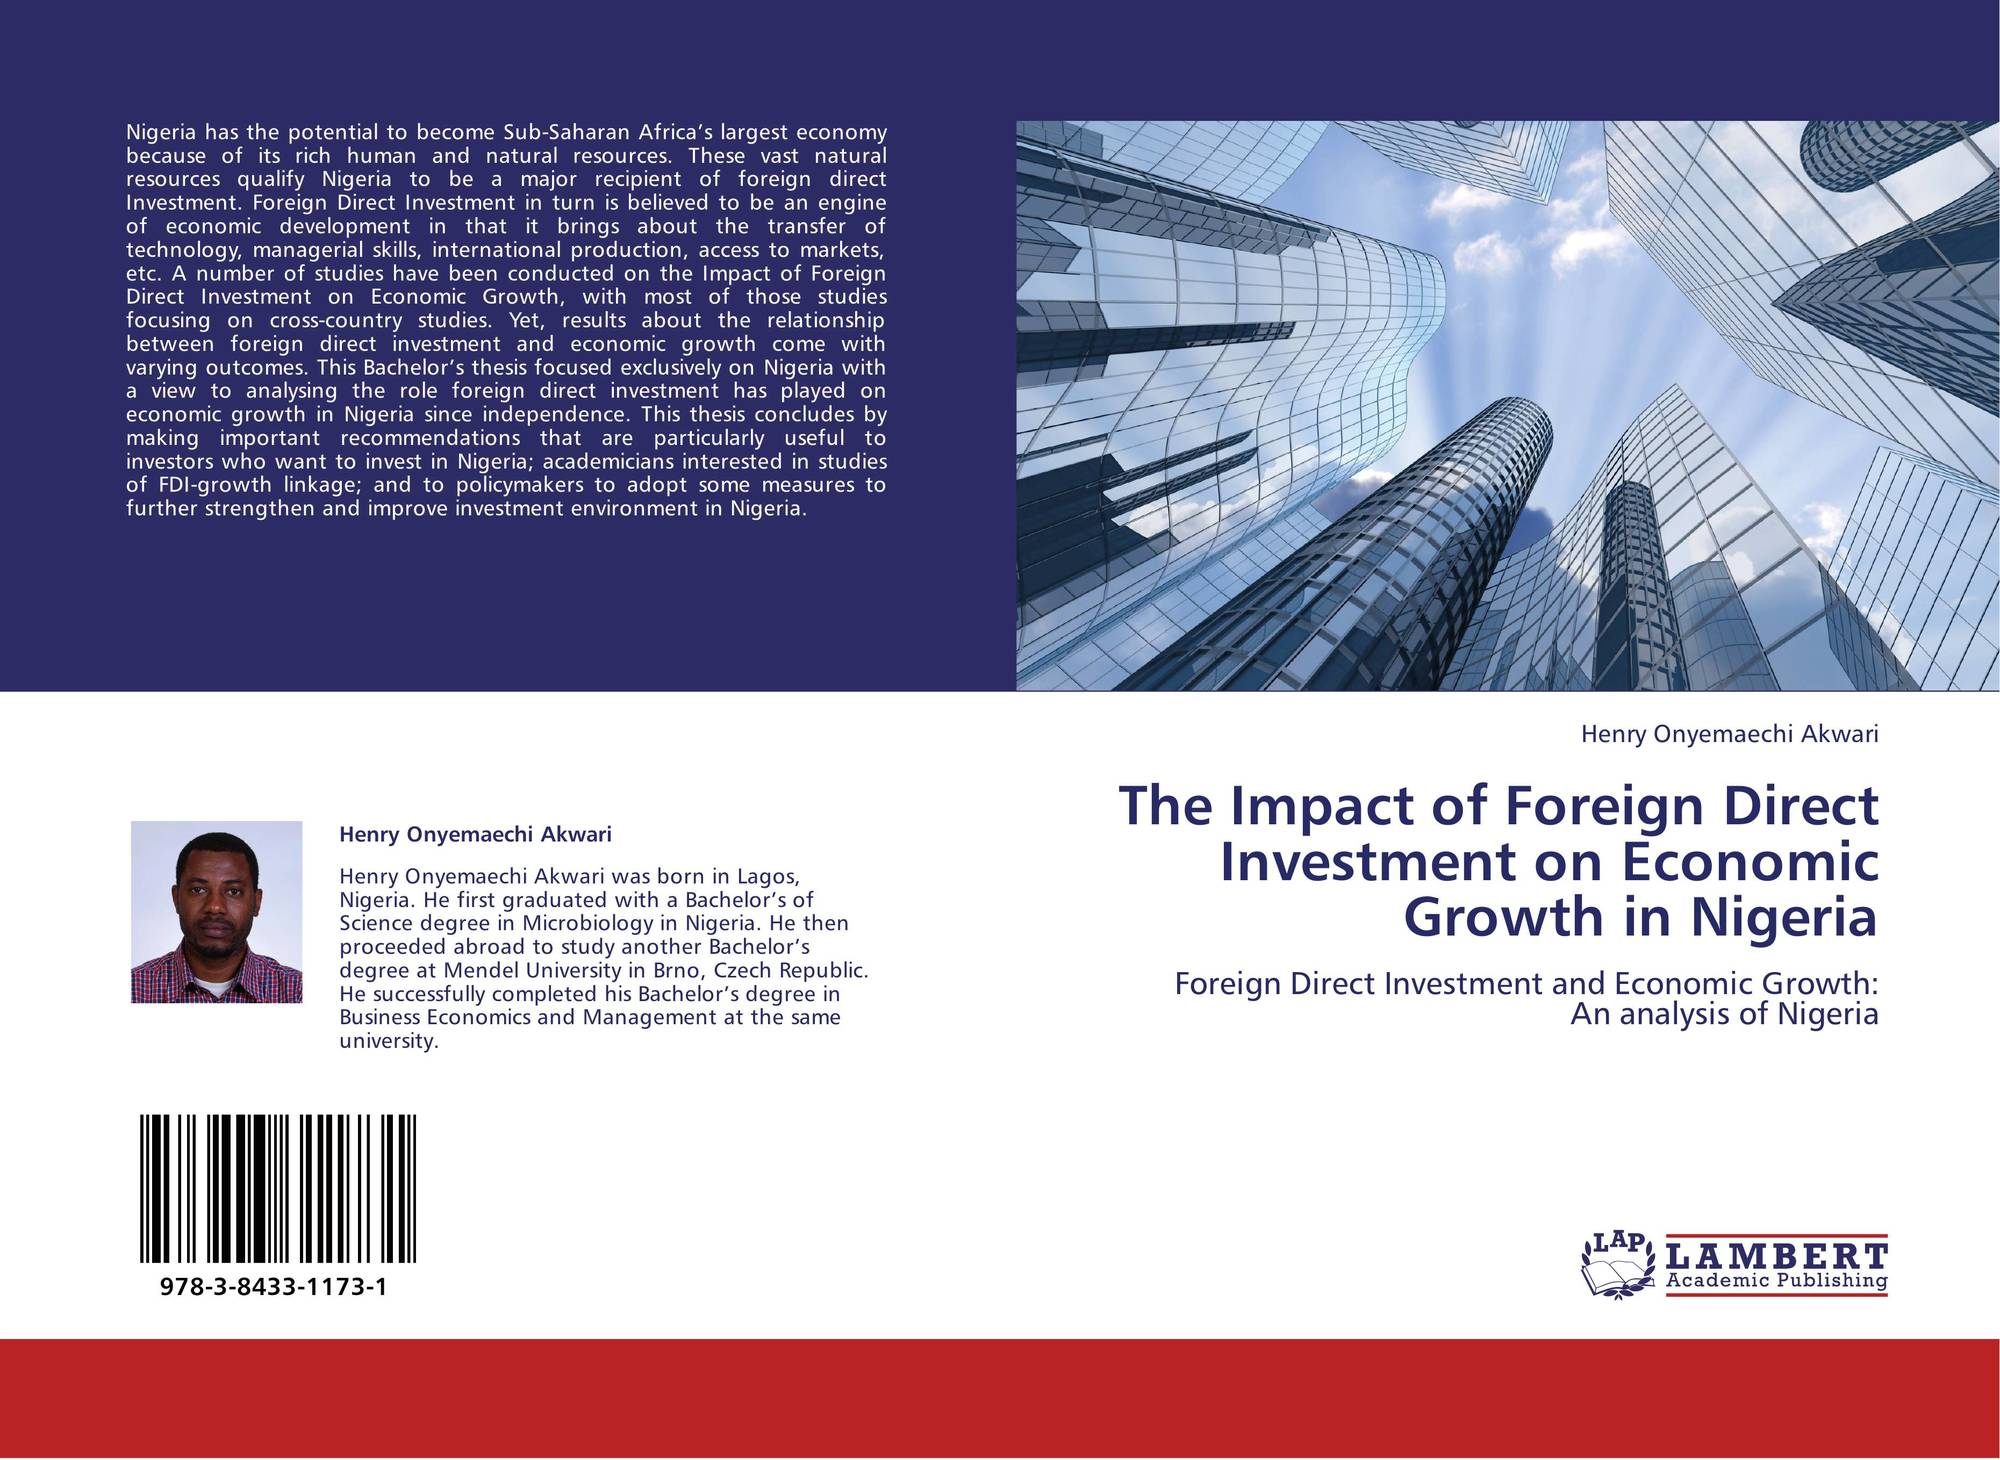 impact of foreign direct investment on Impact of foreign direct investment on employment in oman vandana joshi foreign workers in the gcc countries (including oman) increased fivefold from 11.